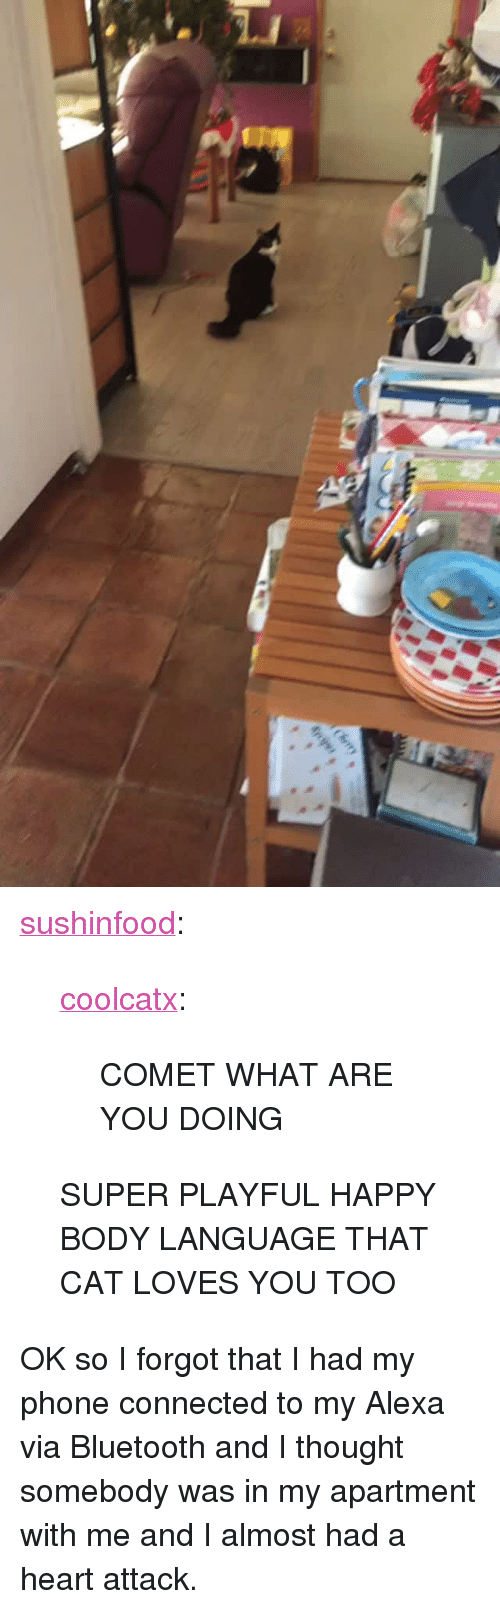 """I Almost Had A Heart Attack: <p><a href=""""http://sushinfood.tumblr.com/post/169253064755/coolcatx-comet-what-are-you-doing-super-playful"""" class=""""tumblr_blog"""">sushinfood</a>:</p> <blockquote> <p><a href=""""http://coolcatx.tumblr.com/post/169096863958/comet-what-are-you-doing"""" class=""""tumblr_blog"""">coolcatx</a>:</p> <blockquote><p>COMET WHAT ARE YOU DOING</p></blockquote> <p>SUPER PLAYFUL HAPPY BODY LANGUAGE THAT CAT LOVES YOU TOO</p> </blockquote>  <p>OK so I forgot that I had my phone connected to my Alexa via Bluetooth and I thought somebody was in my apartment with me and I almost had a heart attack.</p>"""